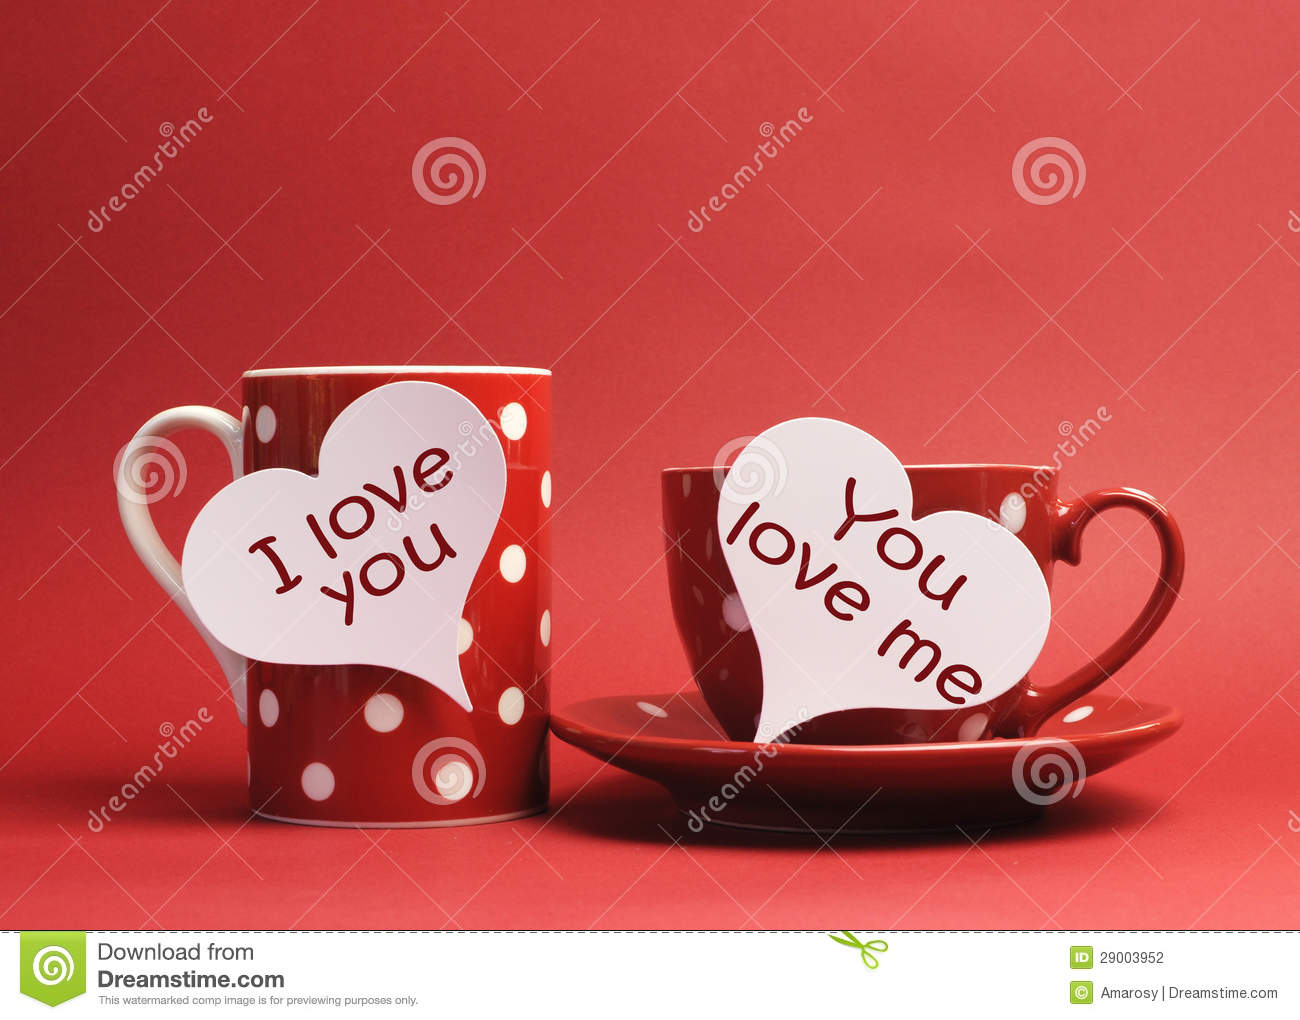 I Love You You Love Me Wallpaper : I Love You And You Love Me Messages Written On Heart Signs On cup And coffee Mug Stock Photo ...